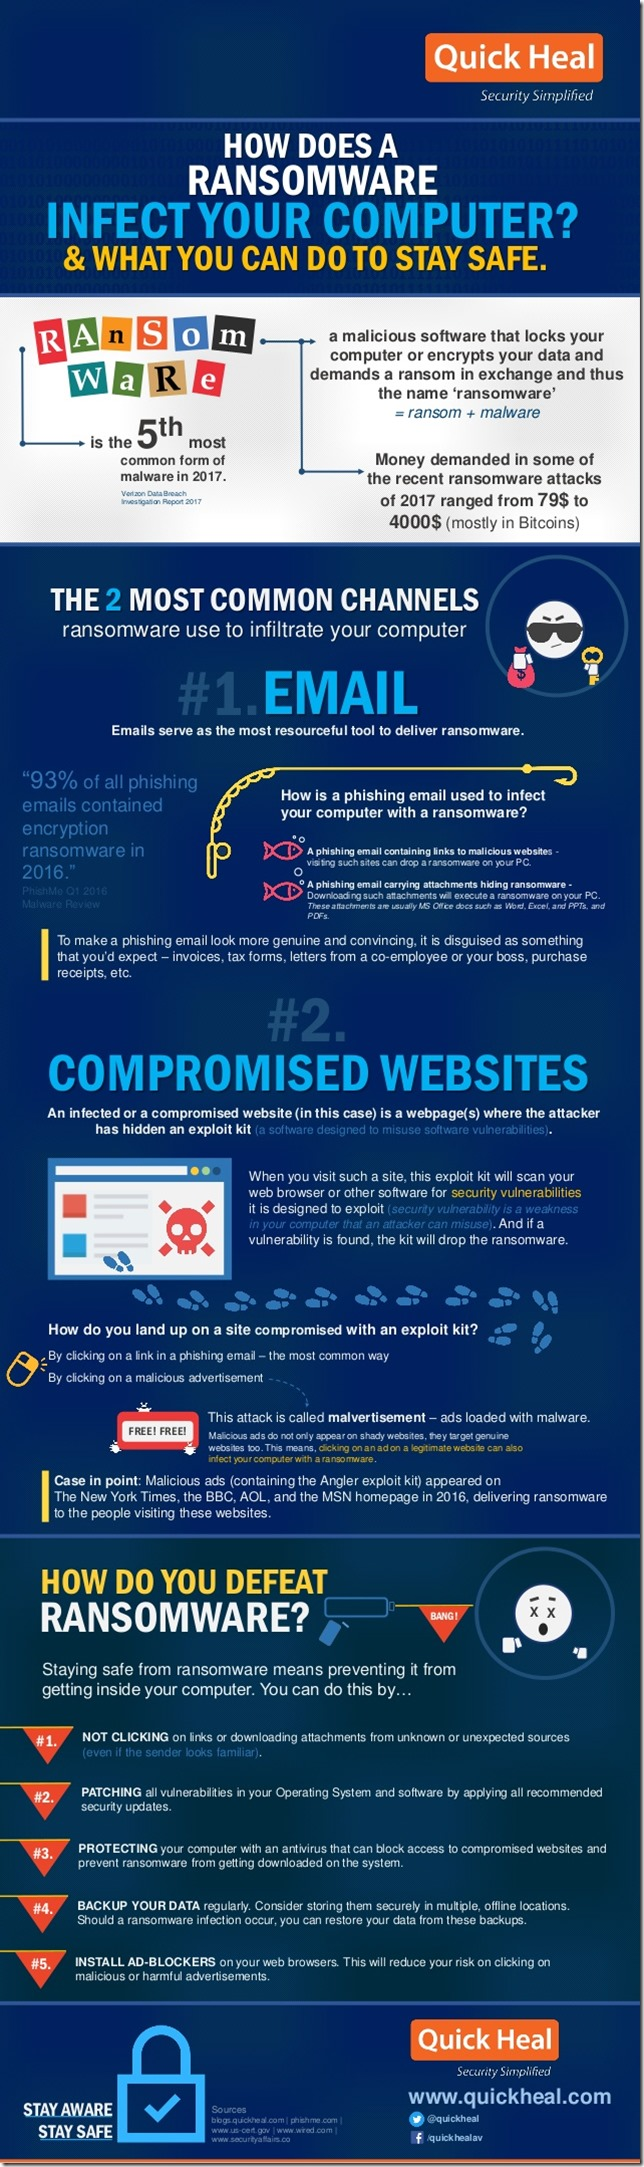 How a Ransomware Infects your Computer [INFOGRAPHIC]